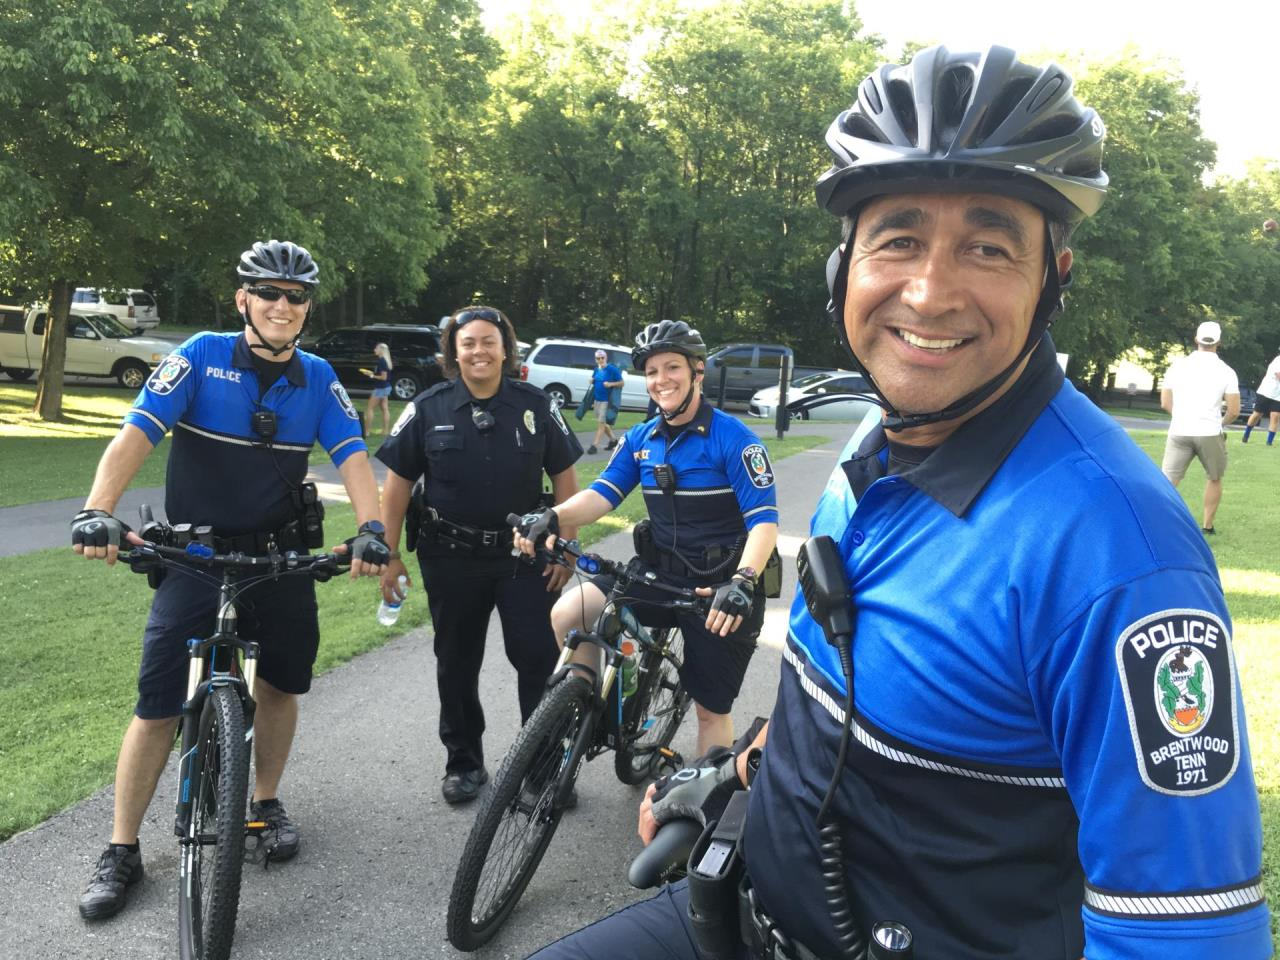 Photo of police bike patrol employees